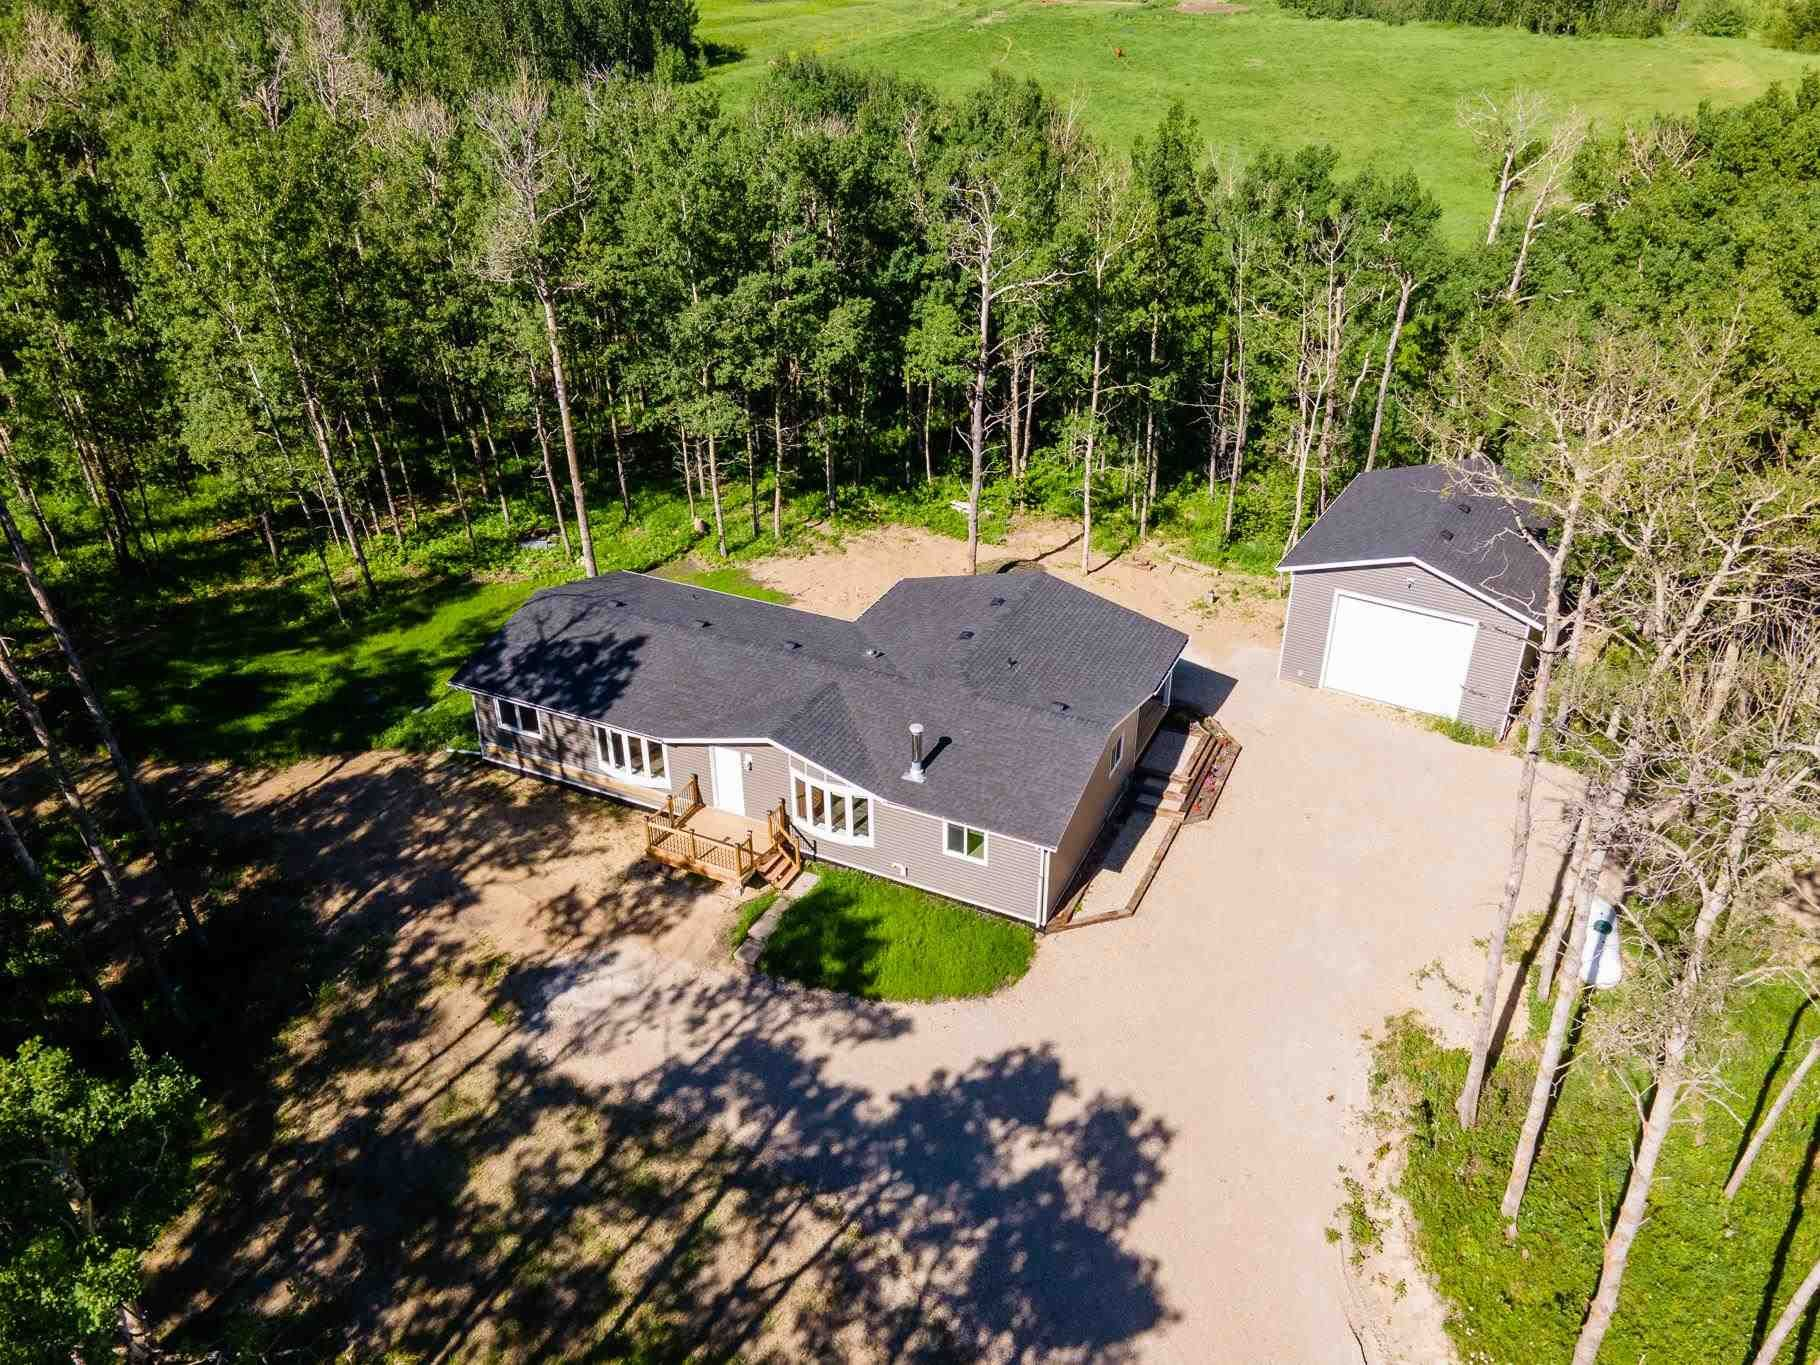 Main Photo: 275035 HWY 616: Rural Wetaskiwin County House for sale : MLS®# E4252163